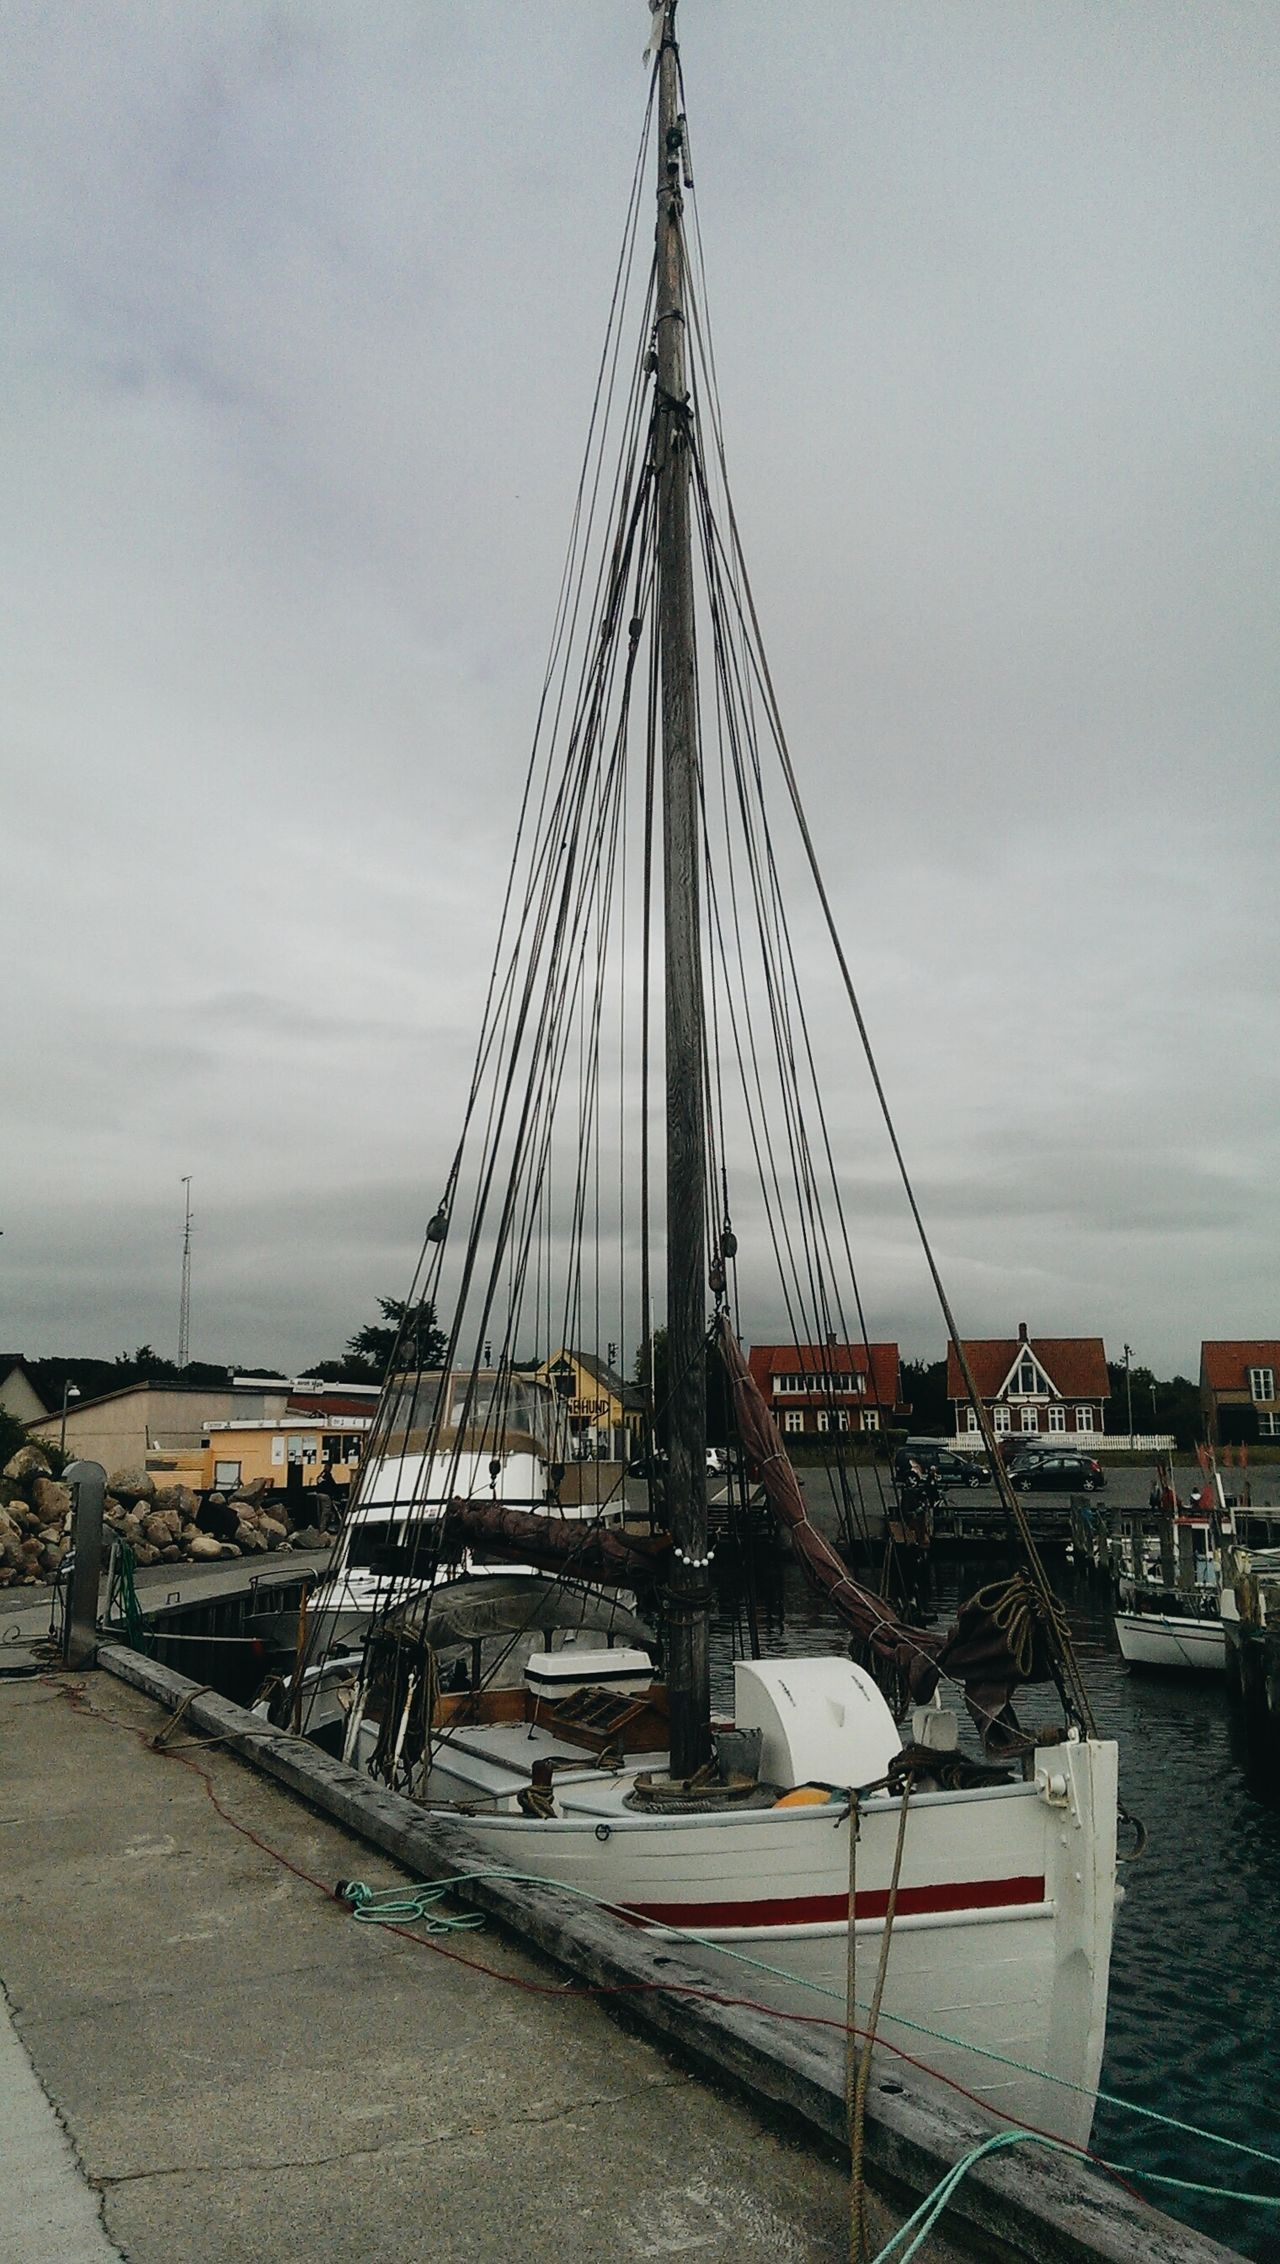 Taken with my HTC One M7 - 2015 Denmark Sailing Ship Tall Ship Nautical Vessel Harbor Sailboat Fishing Port Sea Water Sky Mast Maritime Yachting CloudyBridge - Man Made Structure Langeland Denmark Outdoors Transportation Sailing Yacht Suspension Bridge Travel Destinations Built Structure Day No People